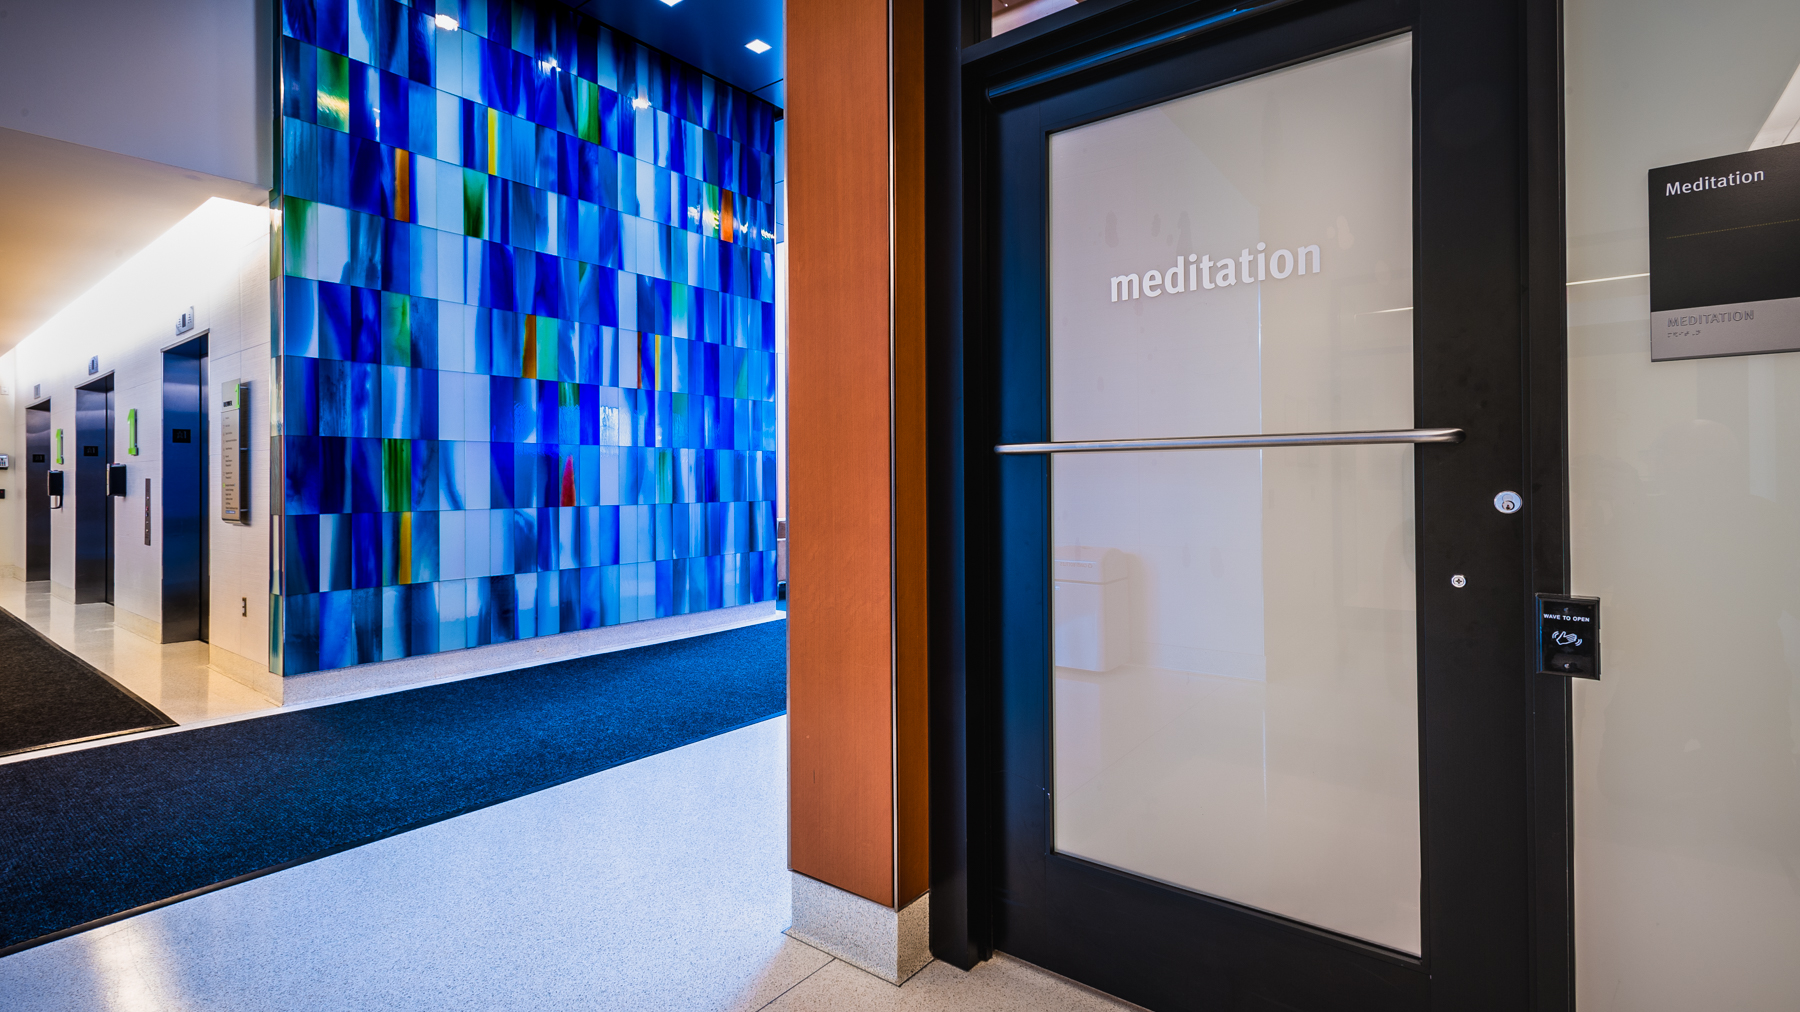 - Spaulding Rehabilitation Hospital opened its new 132-bed facility in Charlestown in 2013, featuring a modern interfaith meditation space rather than a traditional hospital chapel.